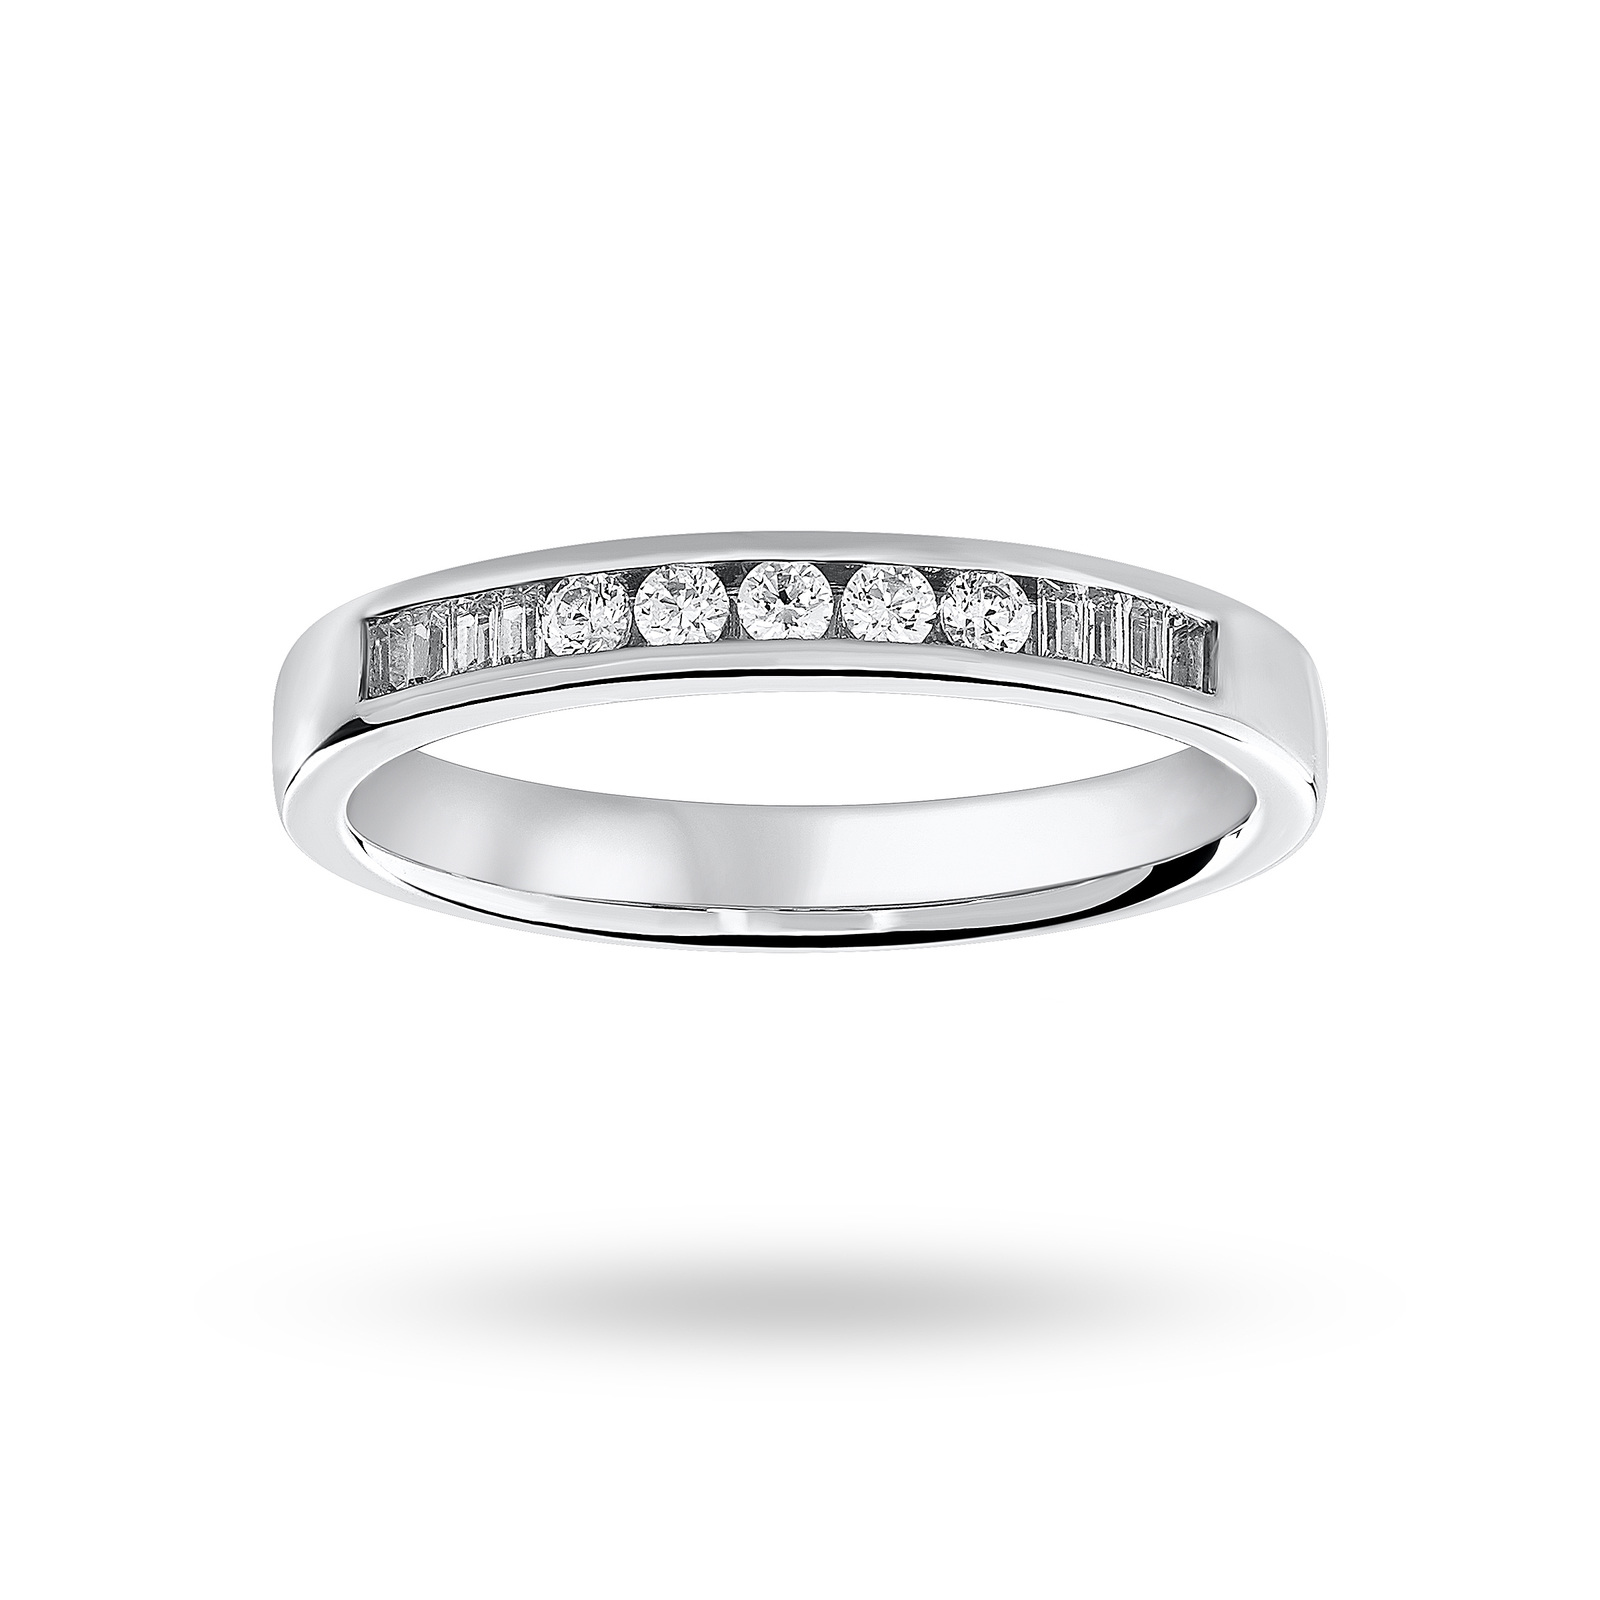 Platinum 0.20 Carat Brilliant Cut and Baguette Channel Set Half Eternity Ring